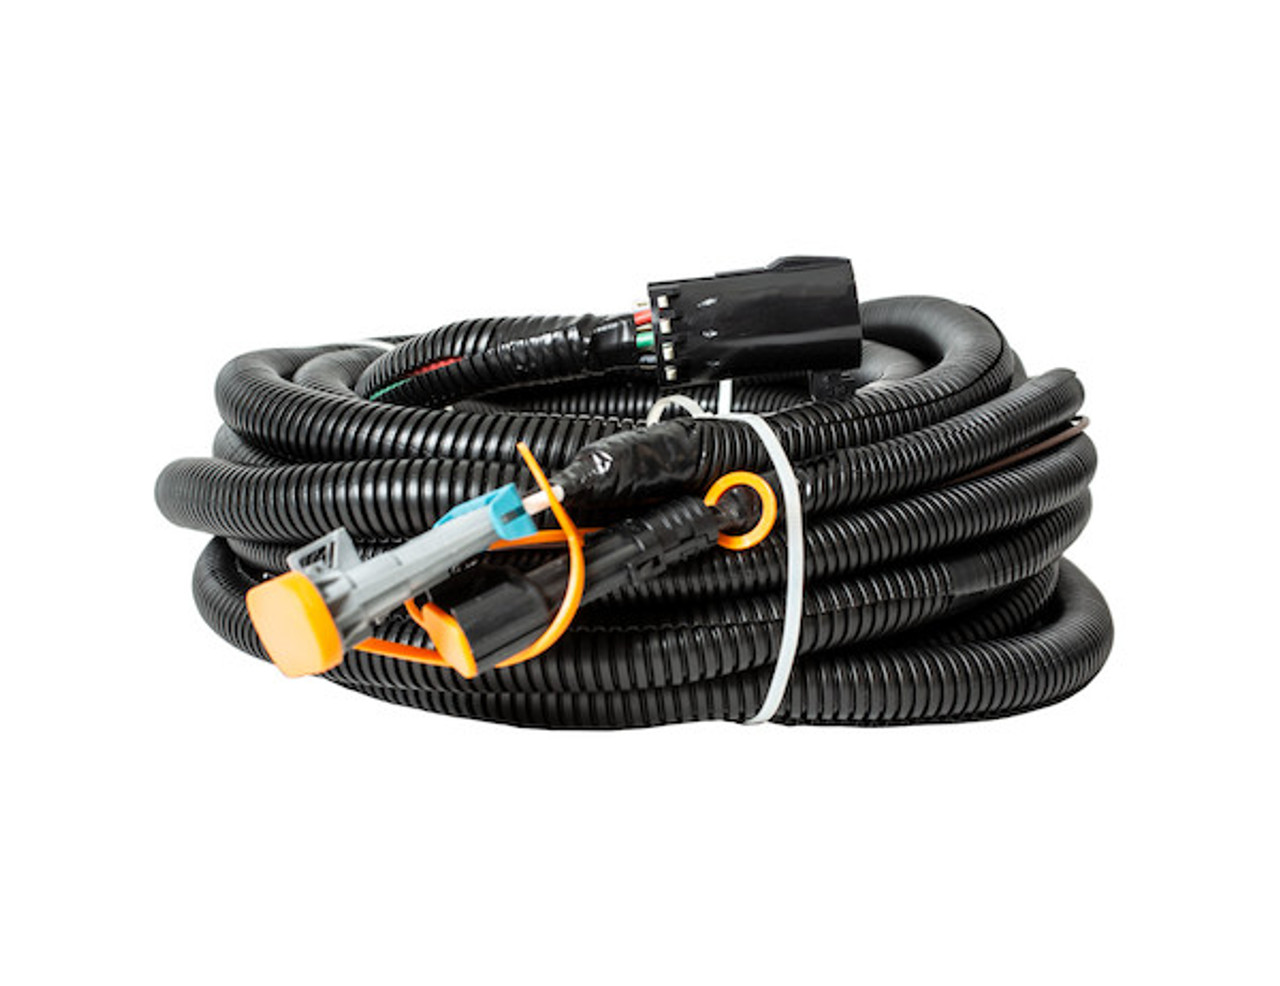 REPLACEMENT MAIN WIRE HARNESS FOR SALTDOGG® SHPE 0750-2000 SERIES SPREADERS top paris supply parissupply sander salt